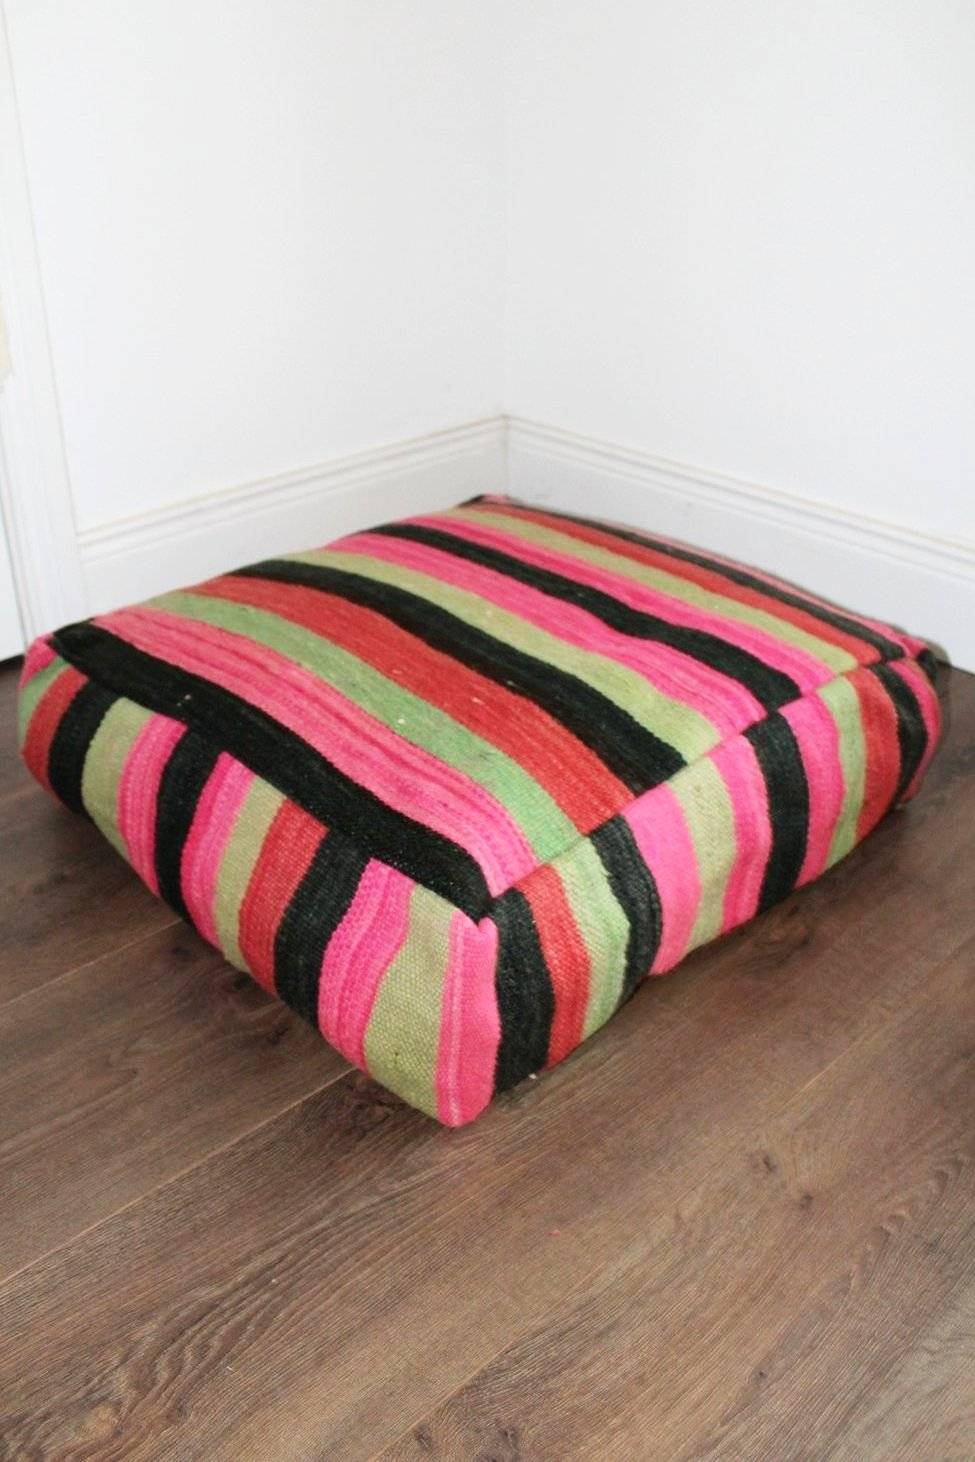 Moroccan Pink / Green / Black Striped Kilim Floor Cushion - Bohemian Lifestyle